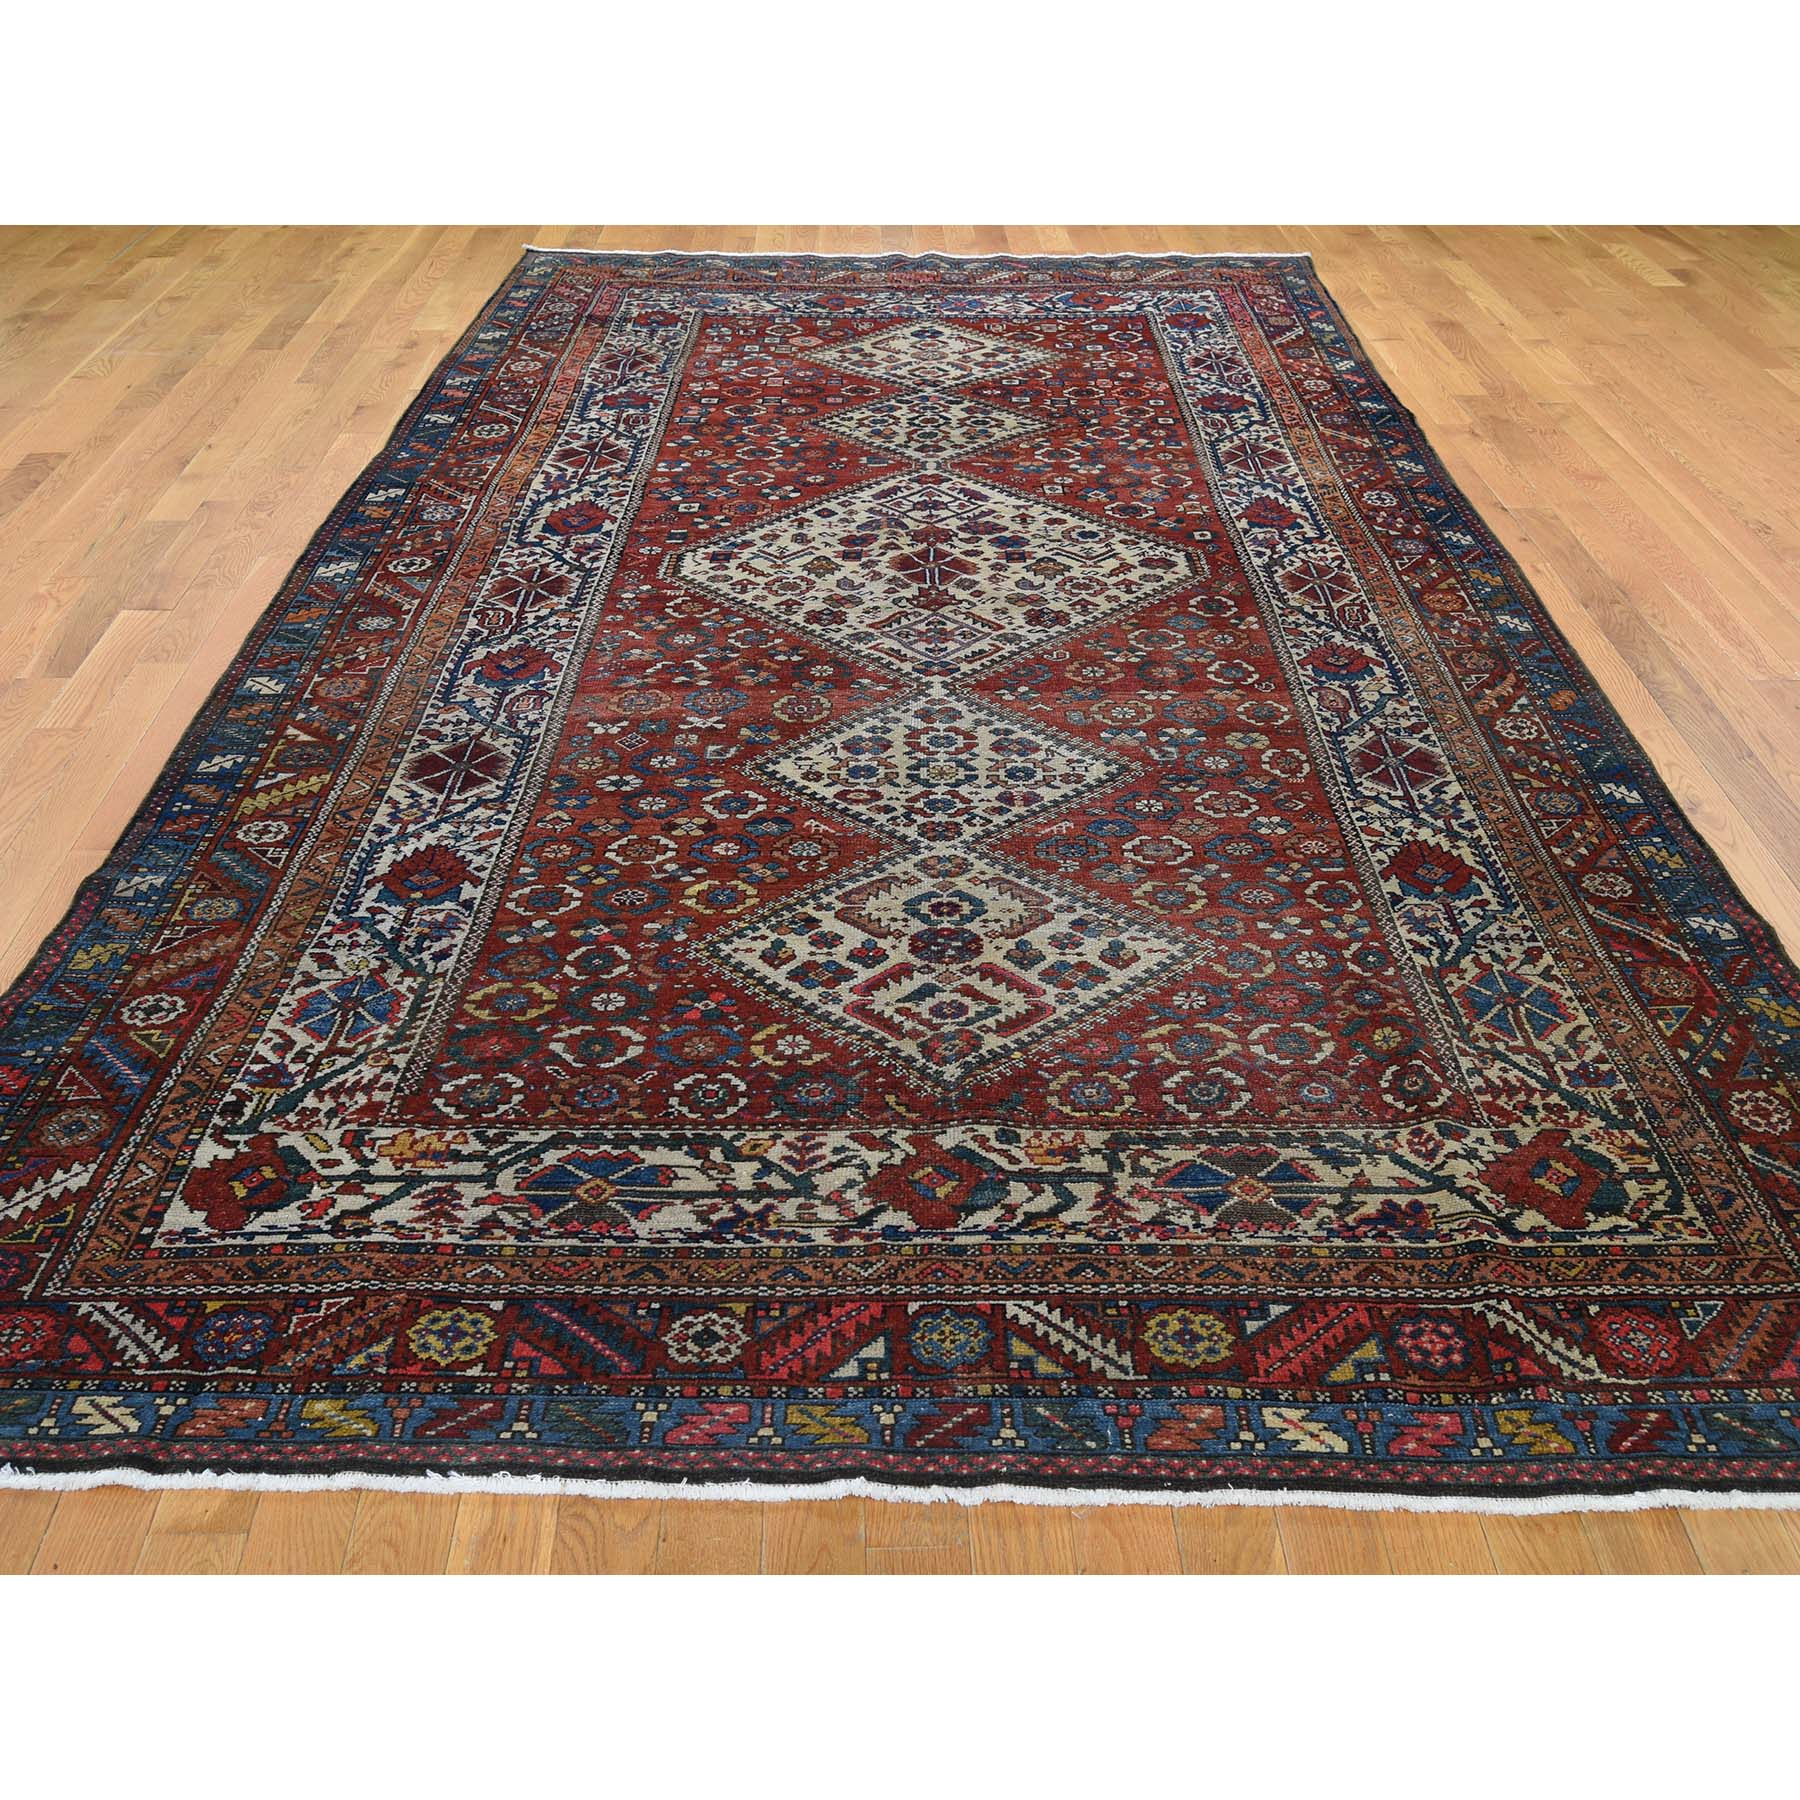 "6'8""x12'8"" Red Gallery Size Antique Persian Bakhtiari Good Con. Full Pile Pure Wool Hand-Knotted Oriental Rug"